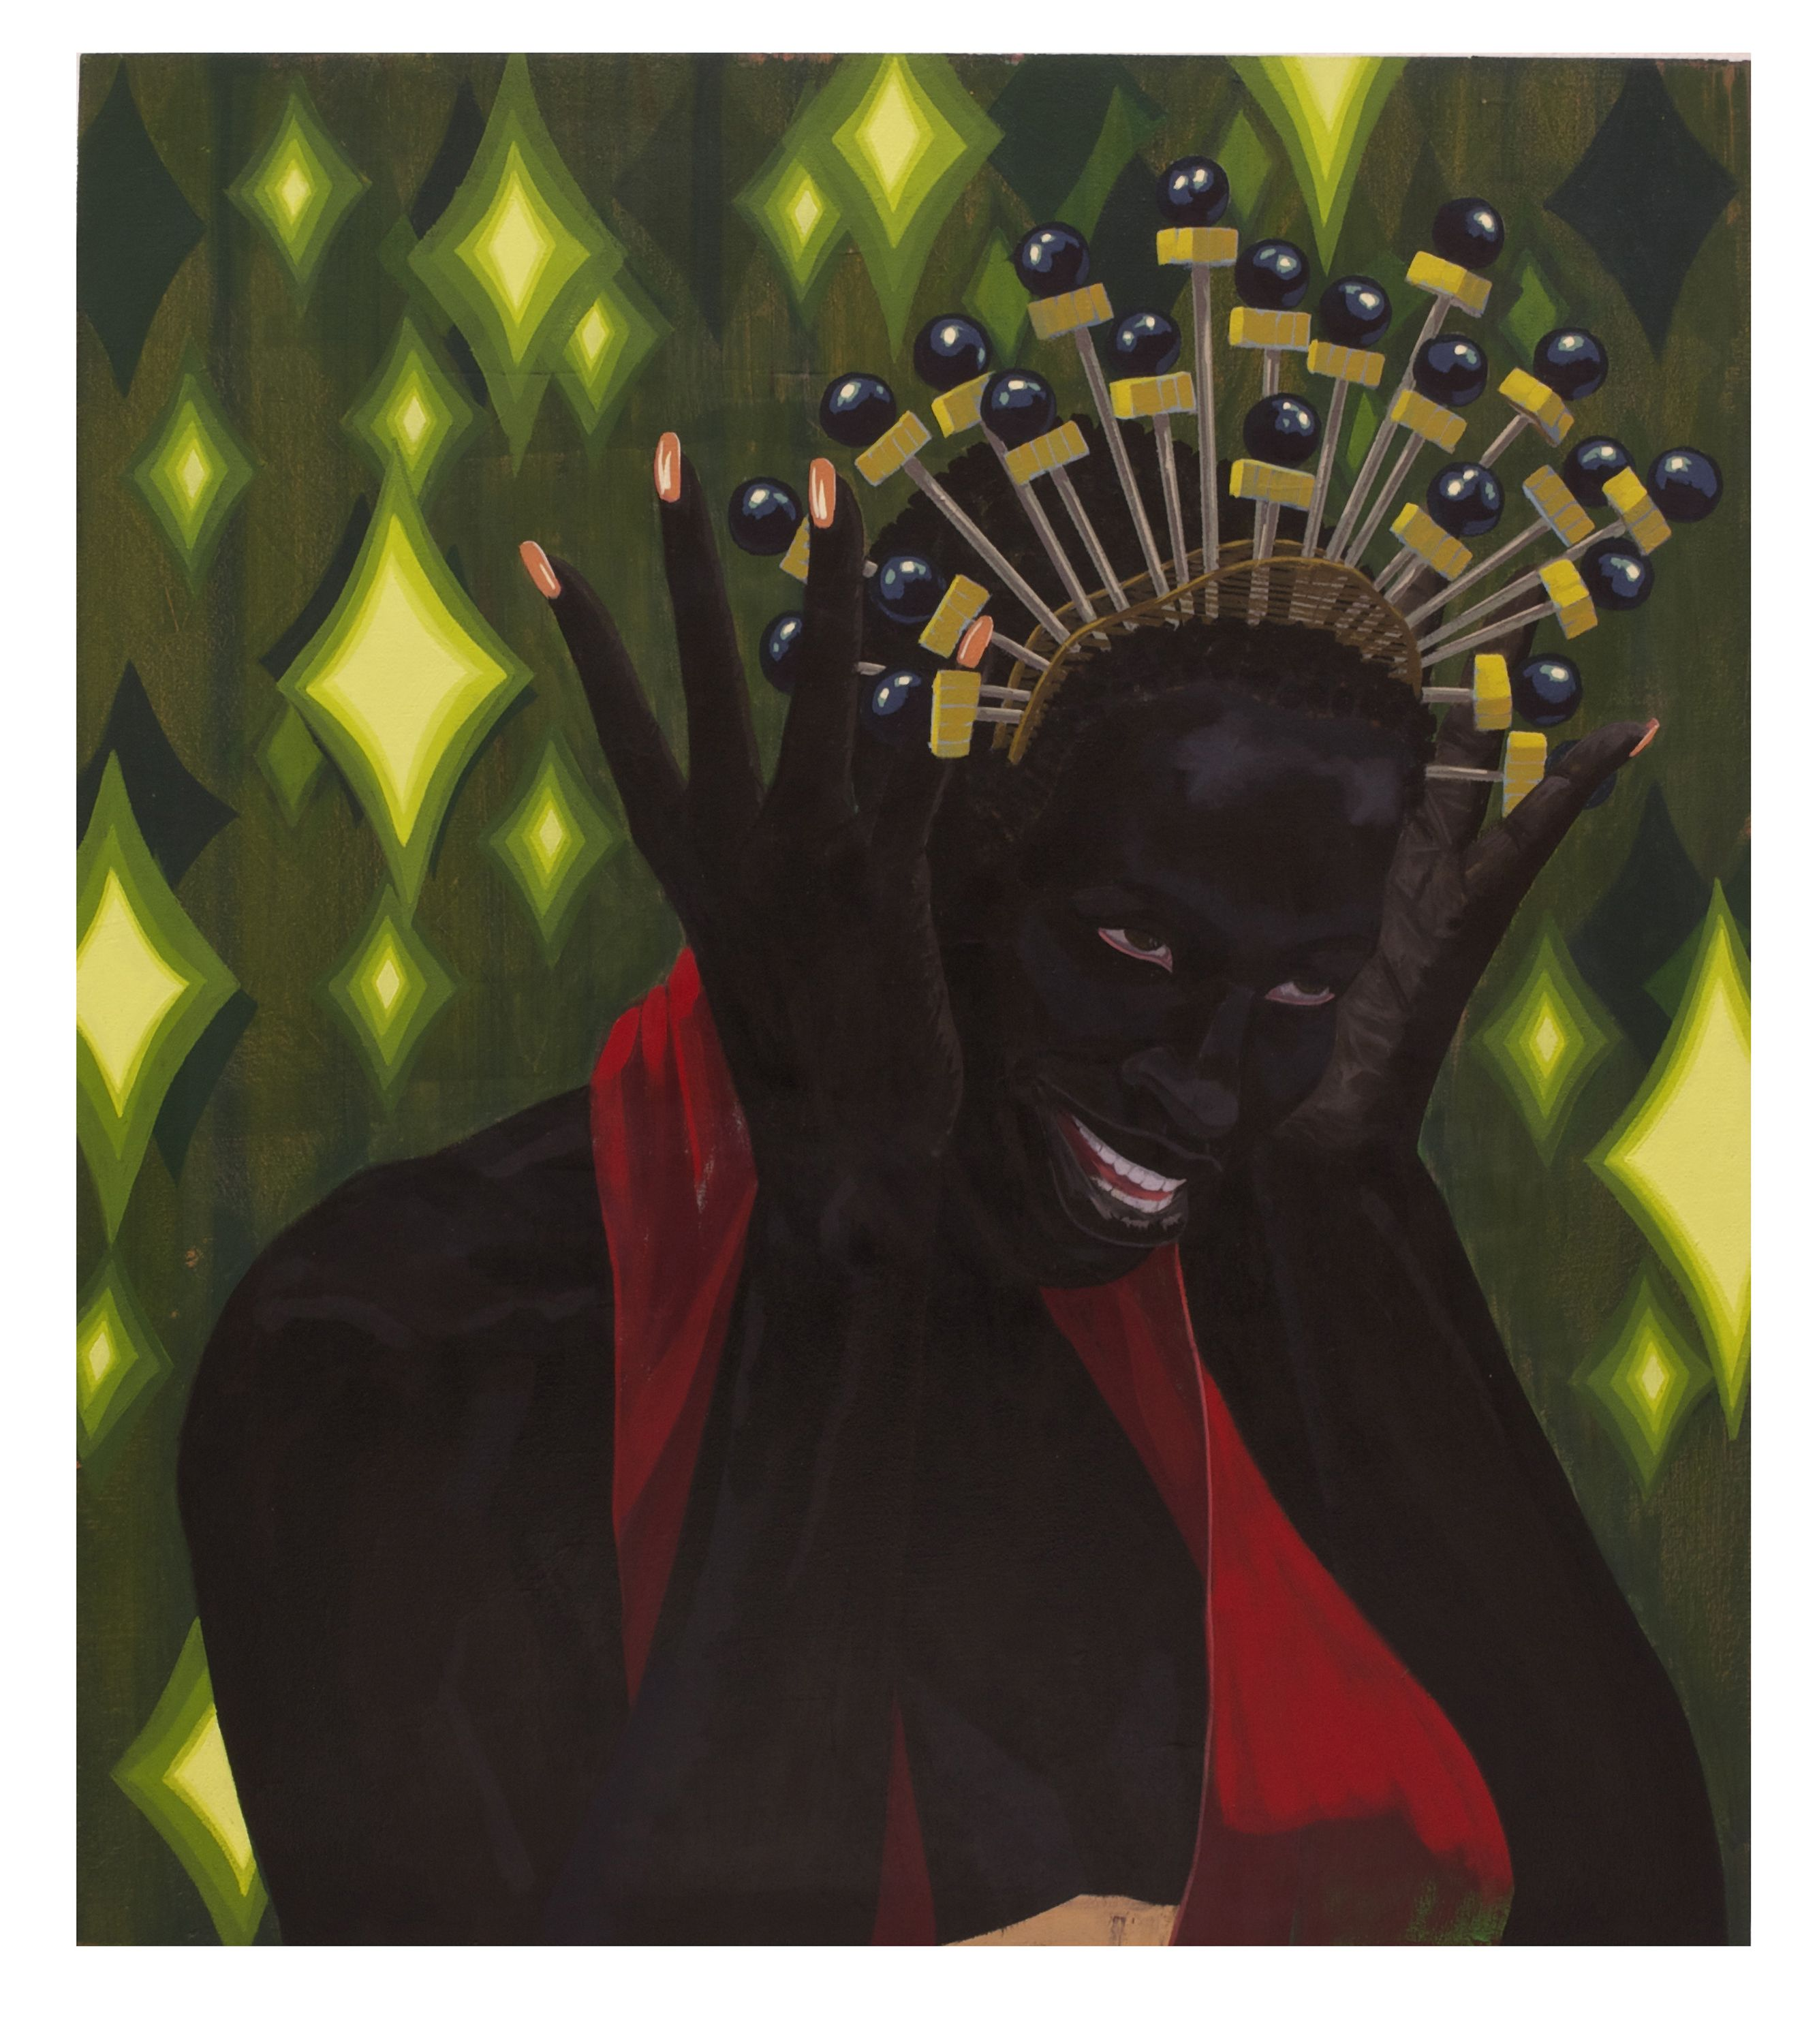 """Kerry James Marshall, Untitled (Crowning Moment), 2014 Acrylic on PVC panel. David Zwirner Marshall challenges the marginalization of African-Americans through his work, whose central protagonists are, in his words, """"unequivocally, emphatically black."""" """"You can't be born in Birmingham, Alabama, in 1955 and grow up in South Central [LA] near the Black Panthers headquarters, and not feel like you've got some kind of social responsibility."""""""